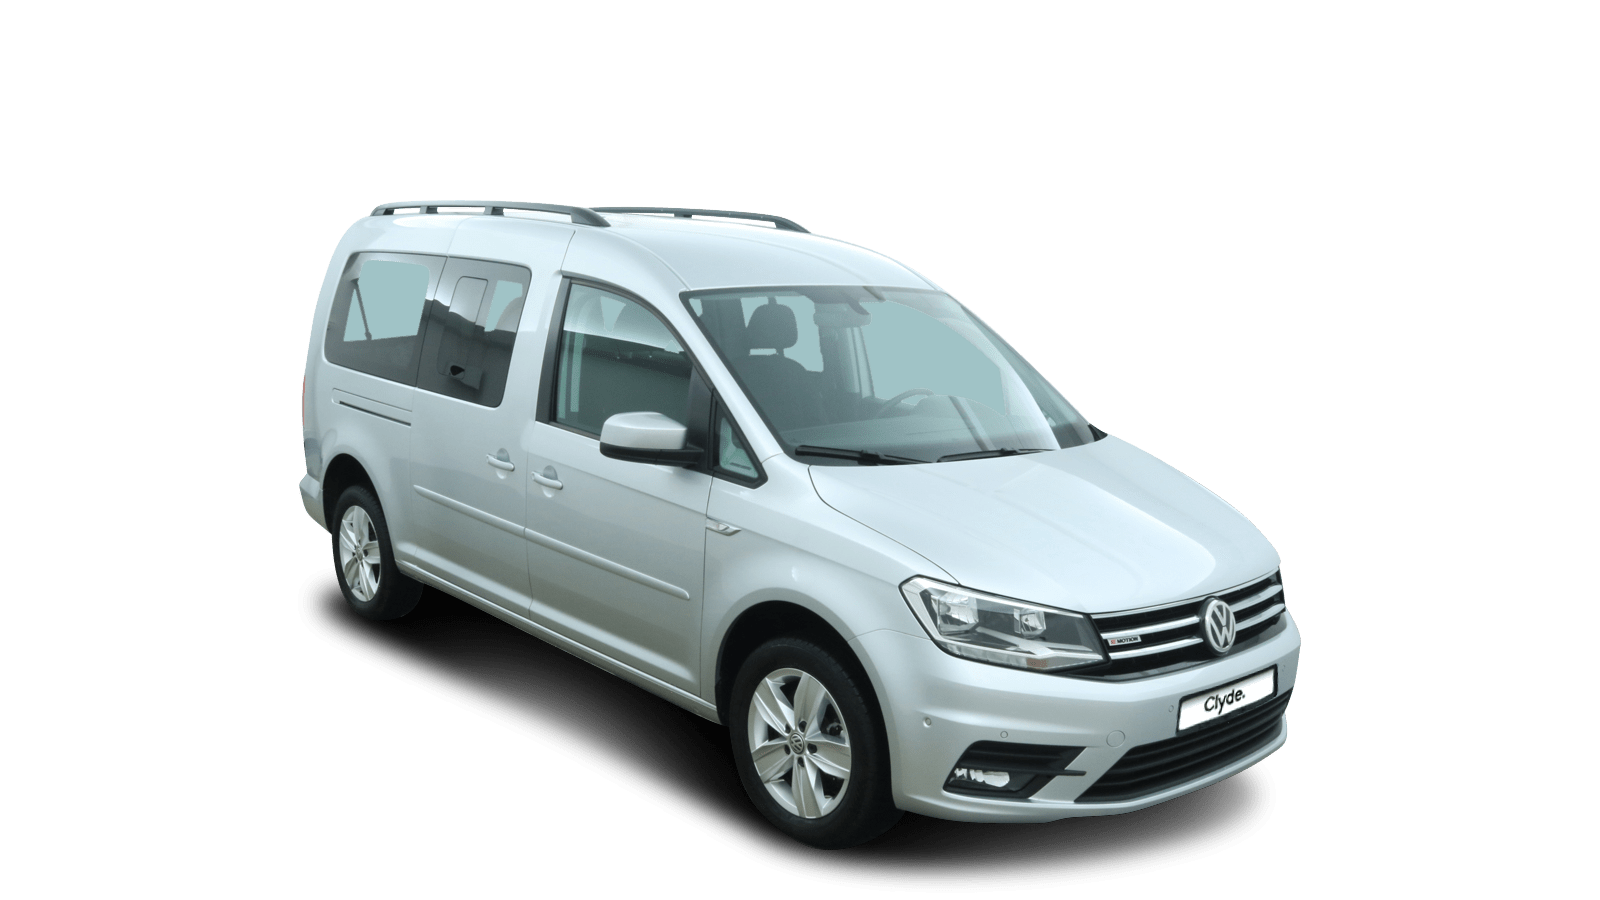 VW NF Caddy Maxi Silver front - Clyde car subscription